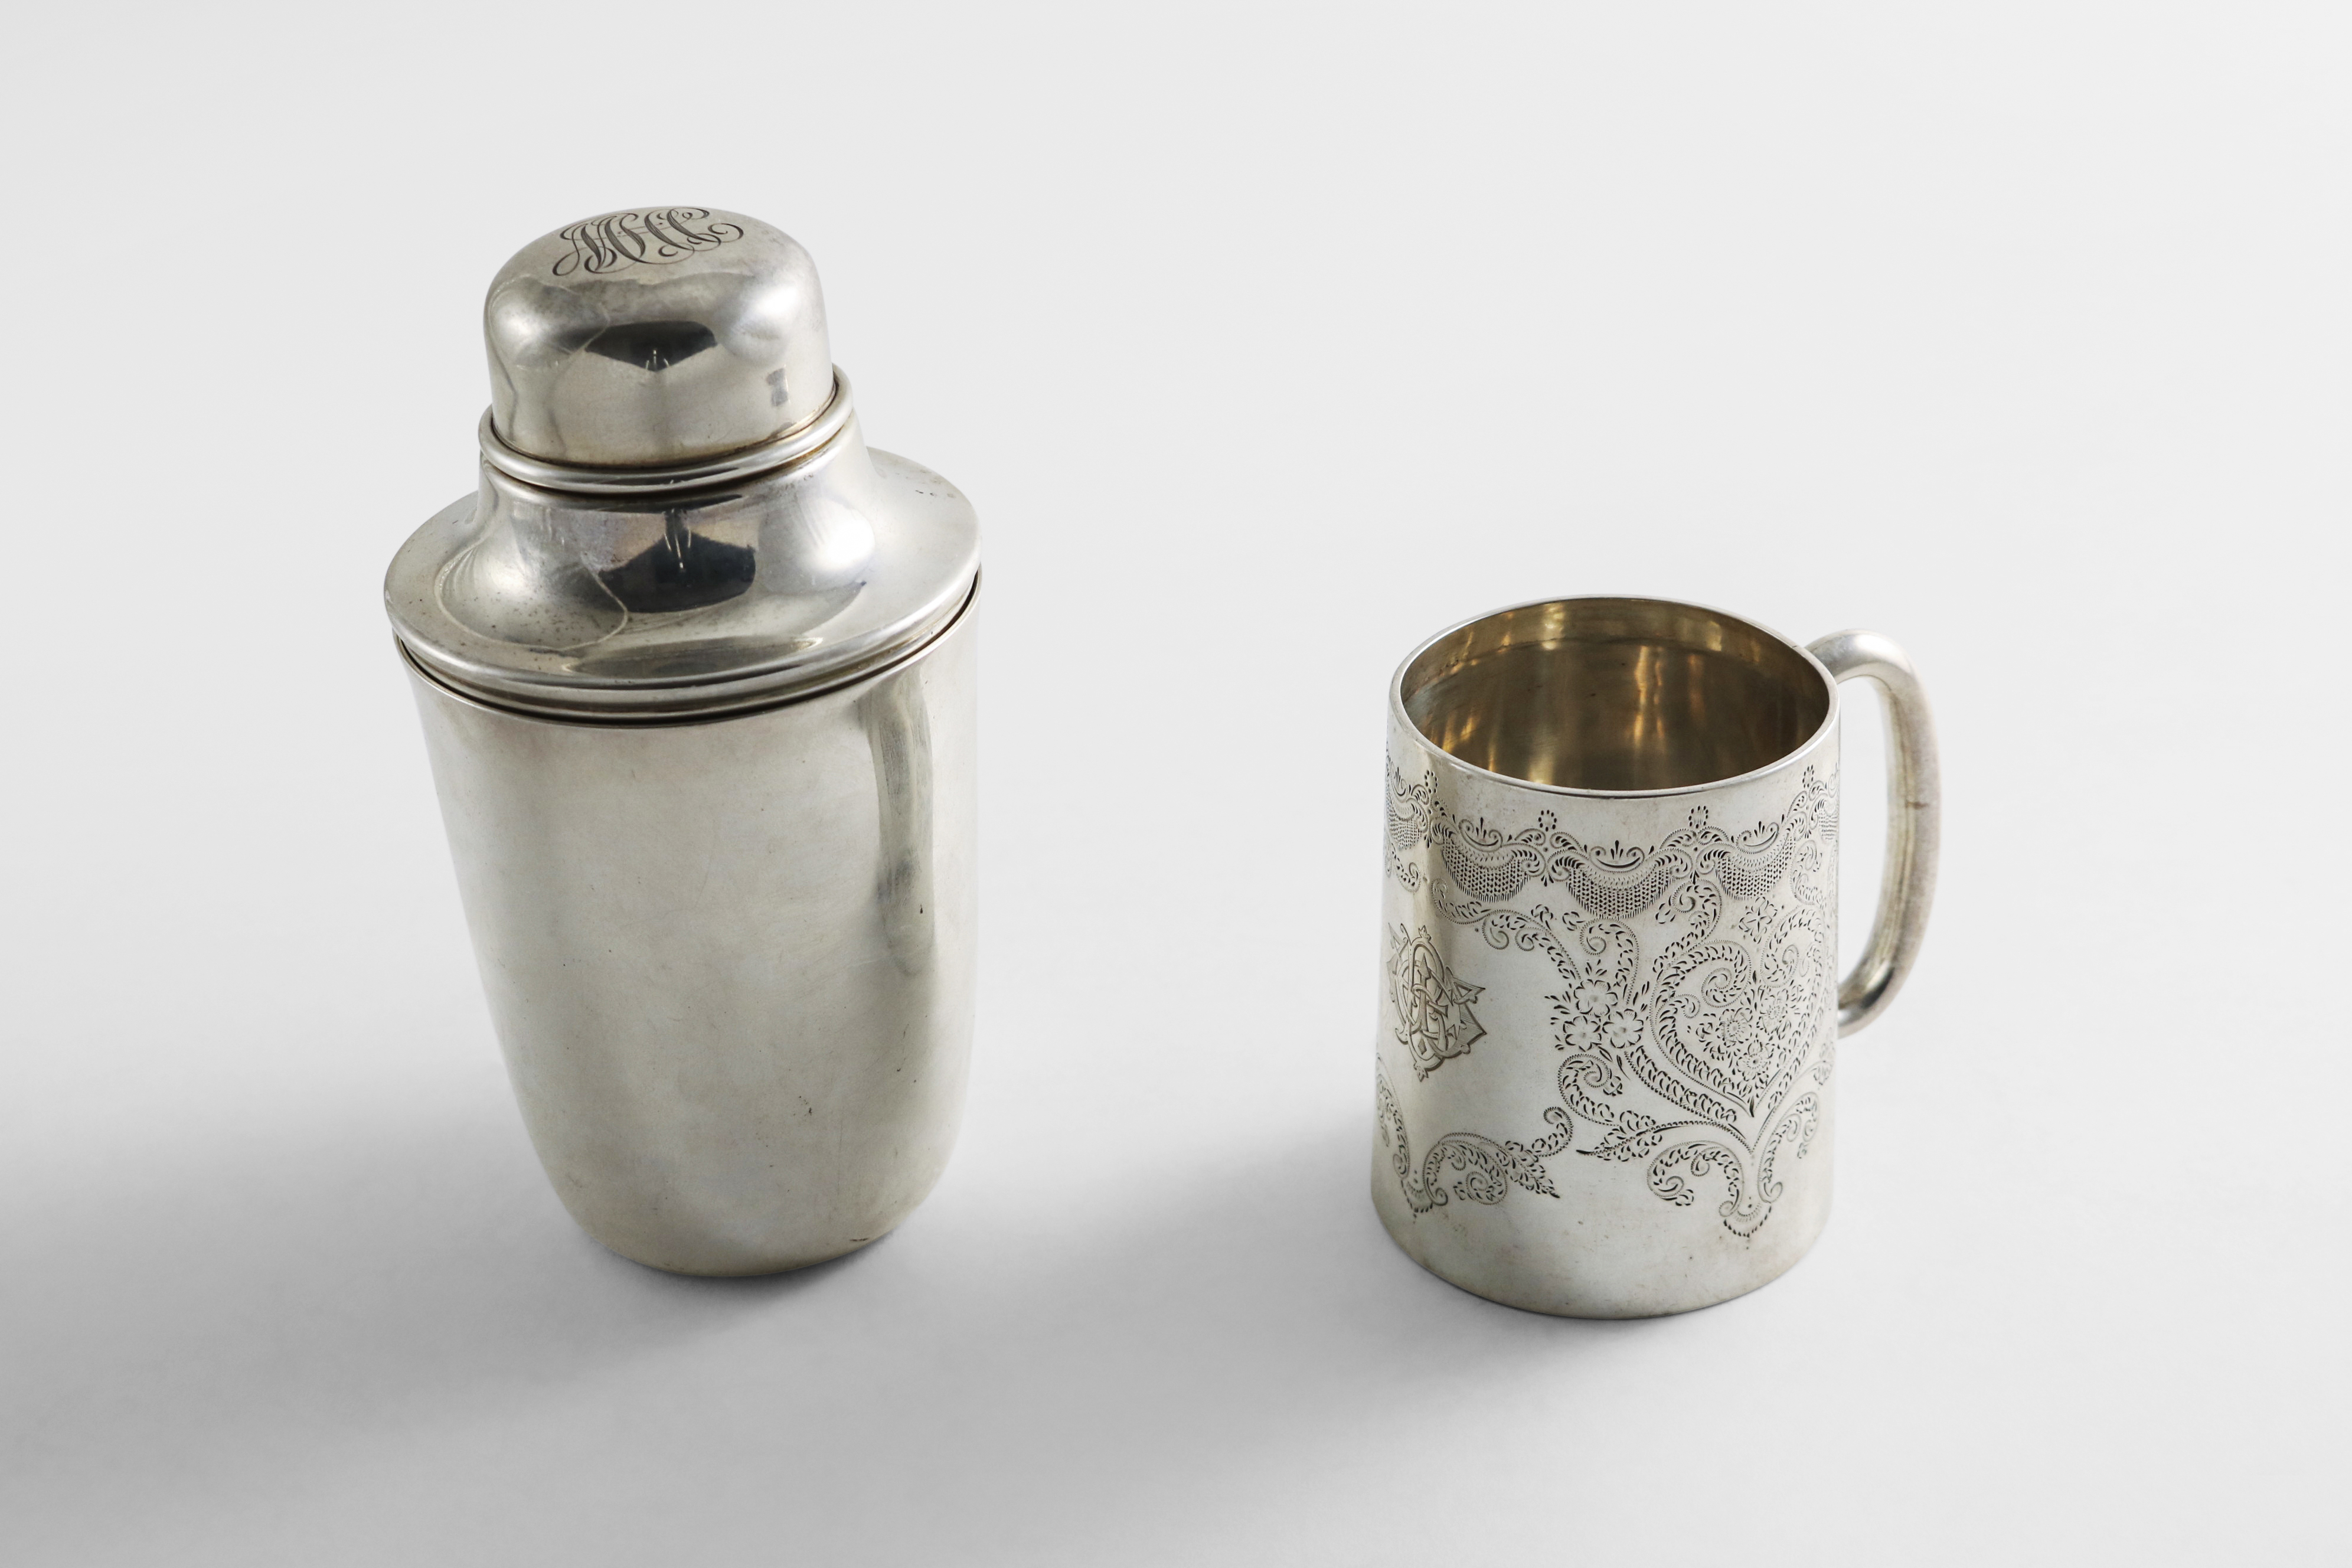 Lot 25 - AN EARLY 20TH CENTURY NORTH AMERICAN SILVER BEAKER by Tiffany & co. (a reproduction of an original